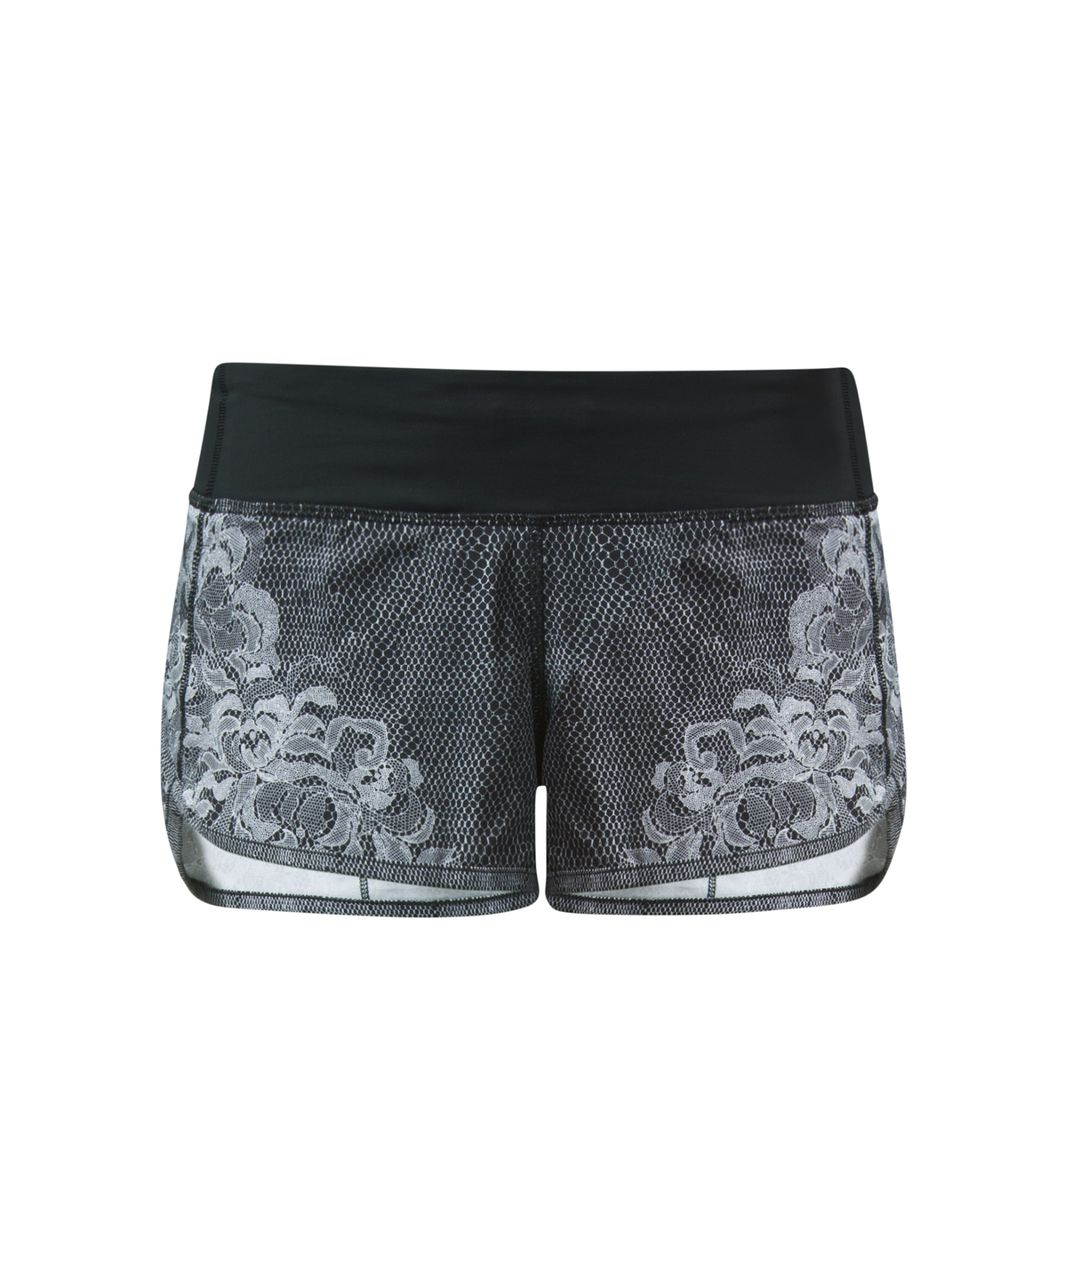 Lululemon Speed Short - Florence Speed Short White Black / Black